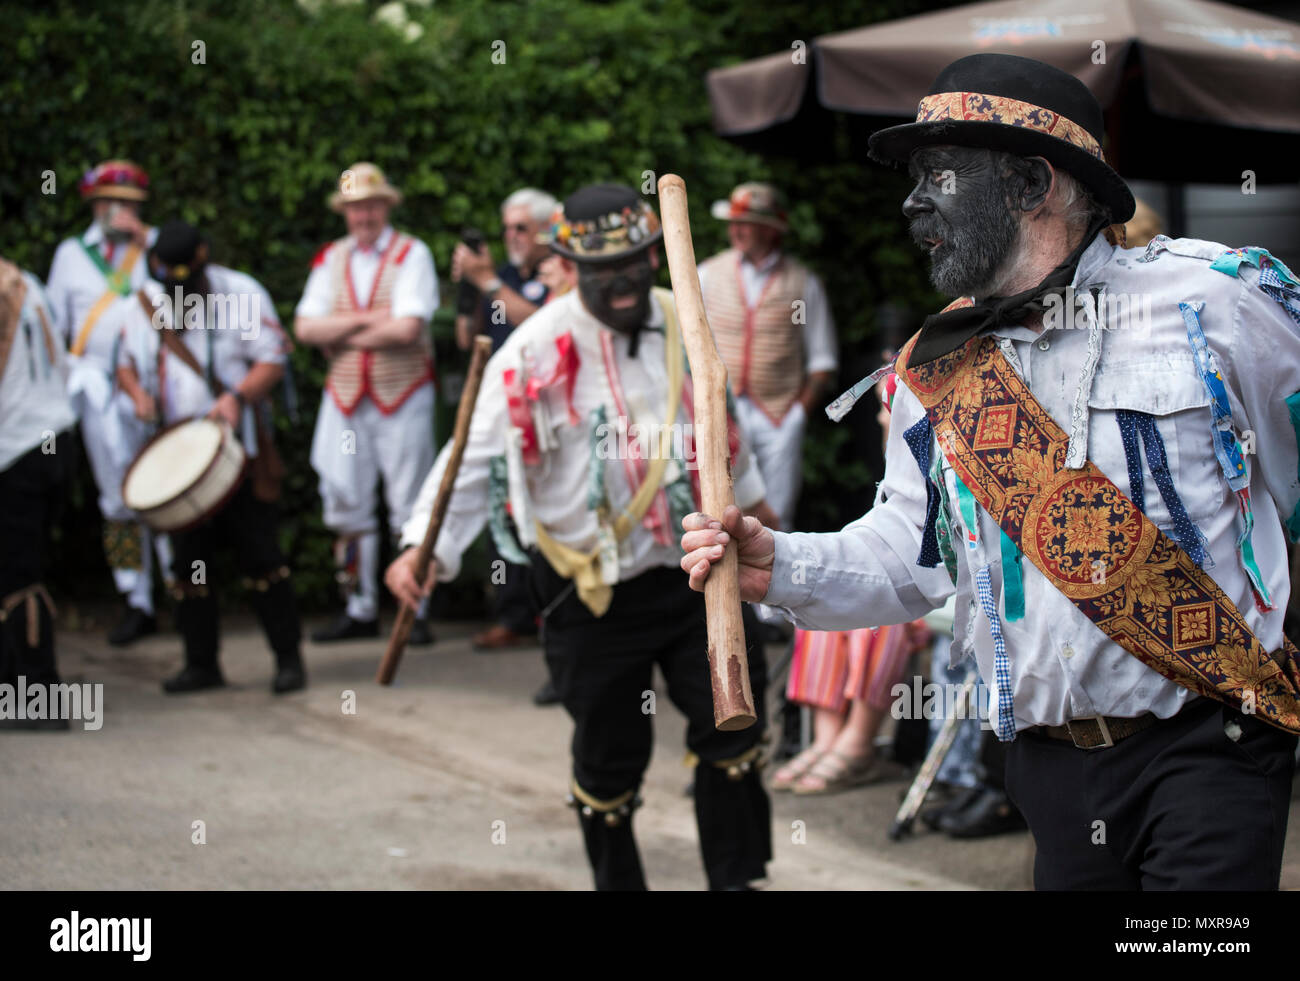 Thaxted Morris Weekend 2-3 June 2018 The Silurian Morris dancing side from Herefordshire dancing in the villages around Thaxted. - Stock Image